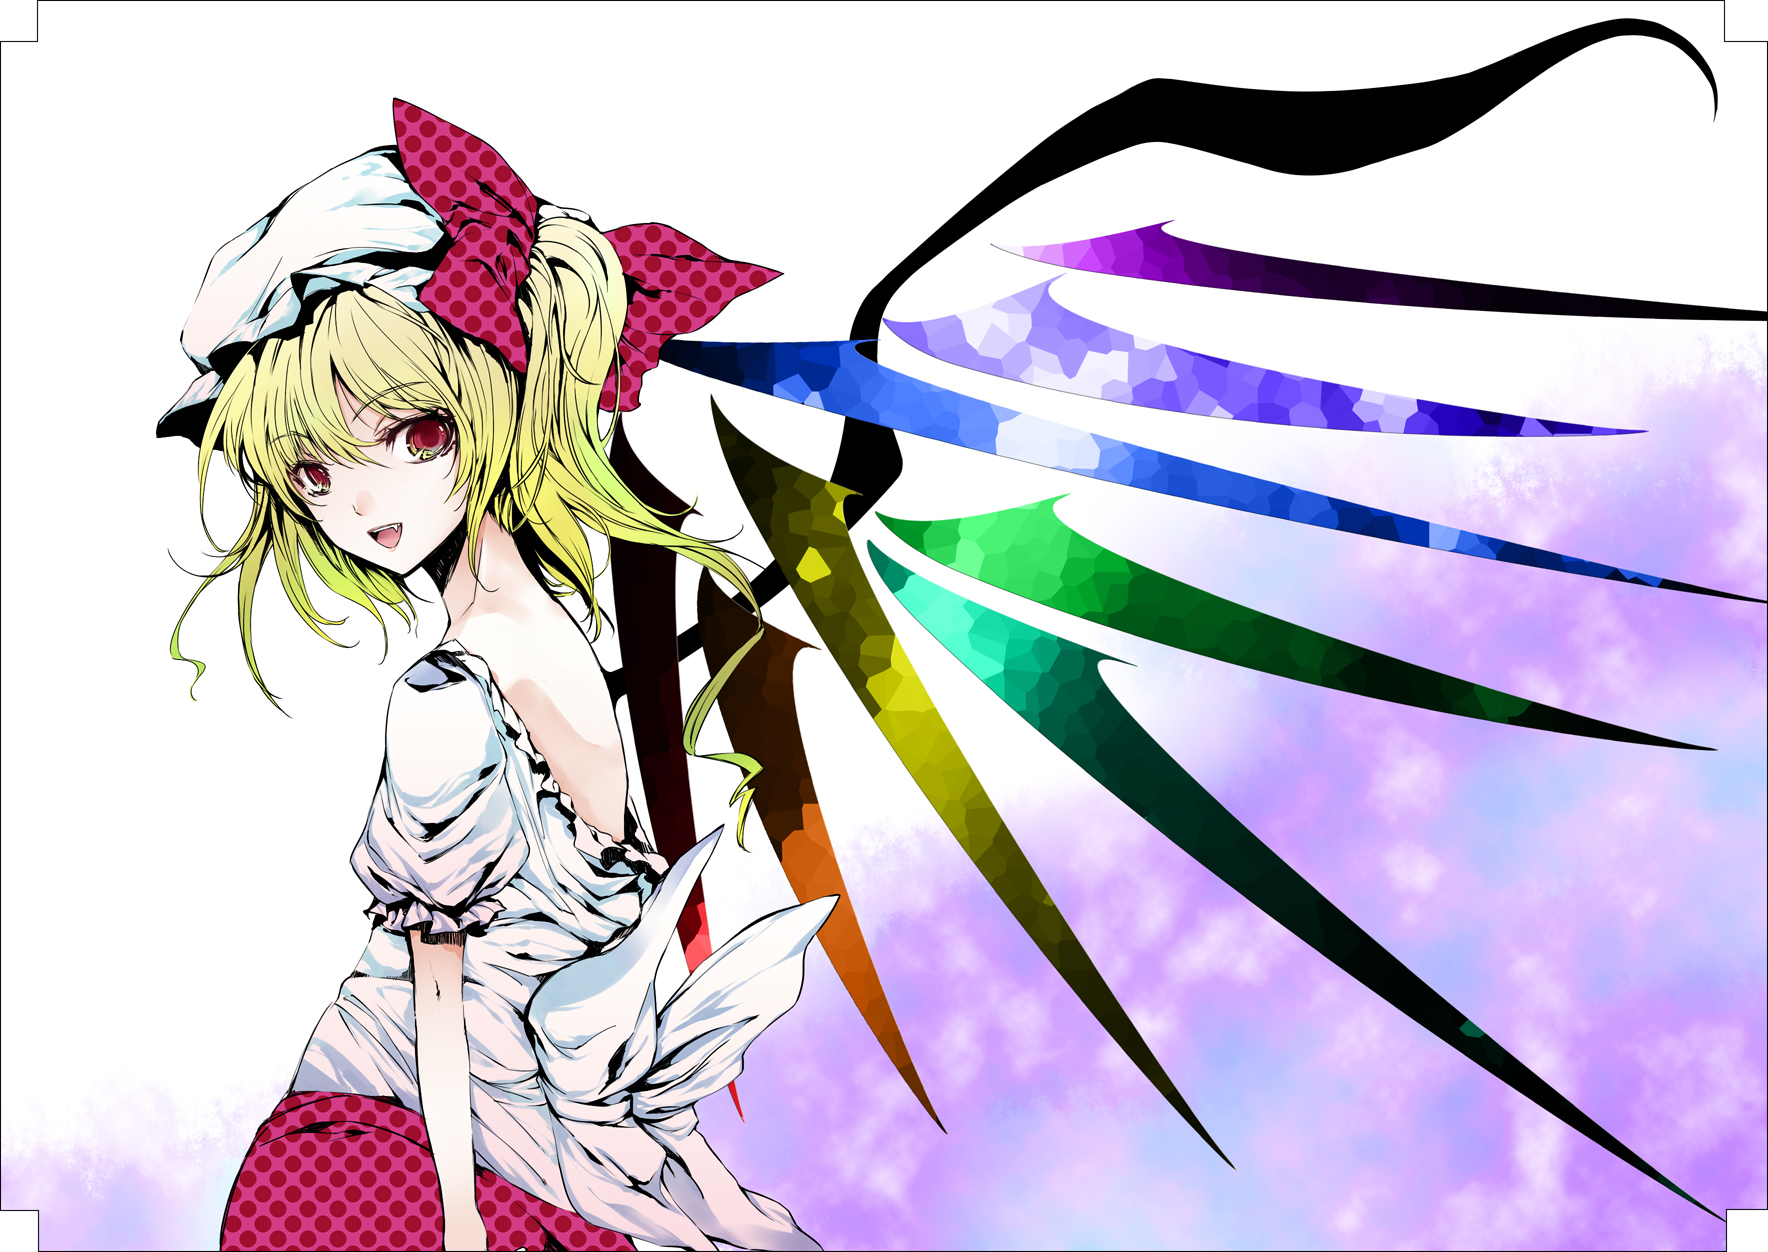 atoshi blonde_hair dress fang flandre_scarlet polychromatic red_eyes ribbons short_hair touhou vampire